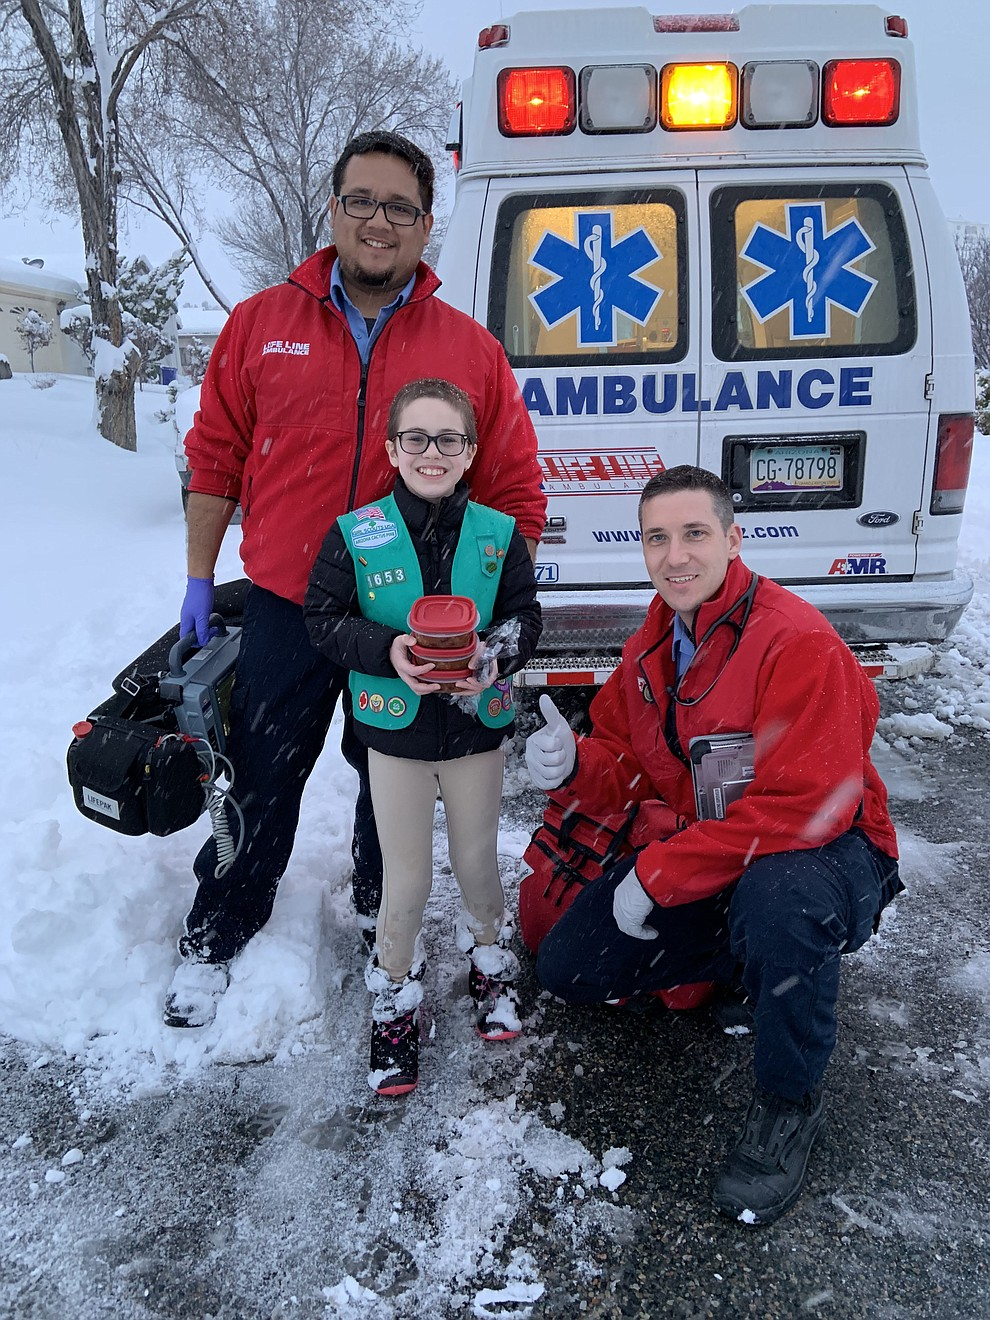 Girl Scout delivers chili to Lifeline crew. Cadence Menei, 11, shares a homemade meal to Prescott crew who braved the weather to respond to a neighborhood call. (Stephanie Menei)